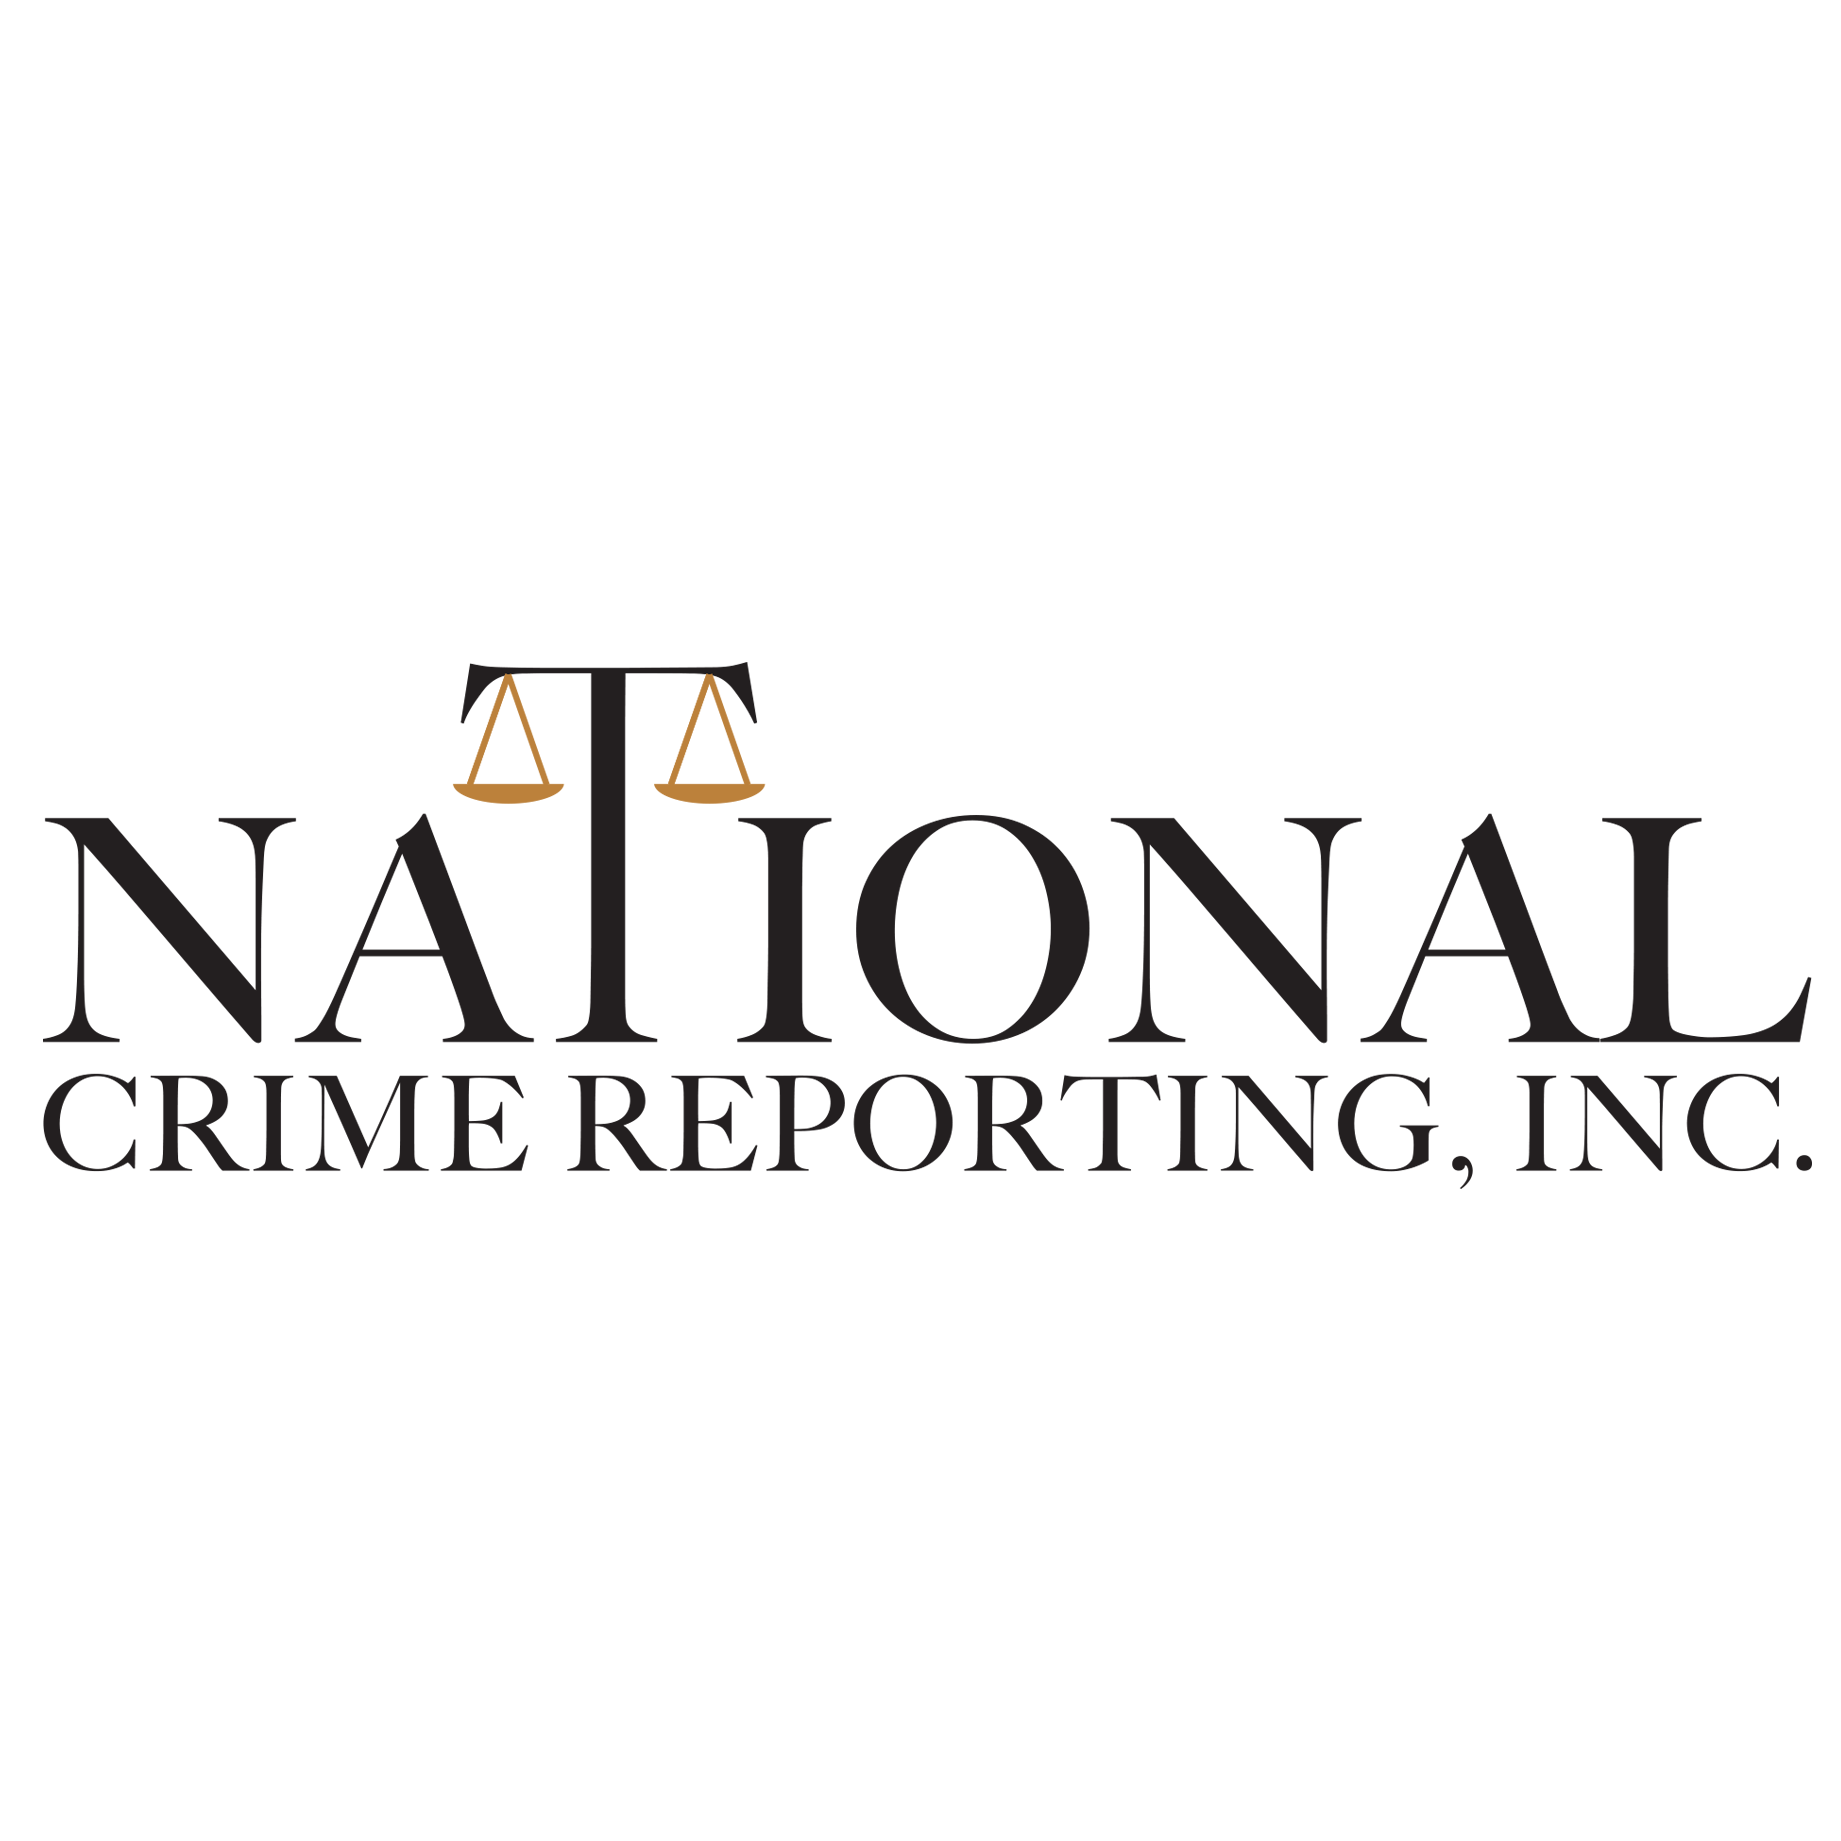 National Crime Reporting - Johns Creek, GA 30022 - (888)350-7627 | ShowMeLocal.com